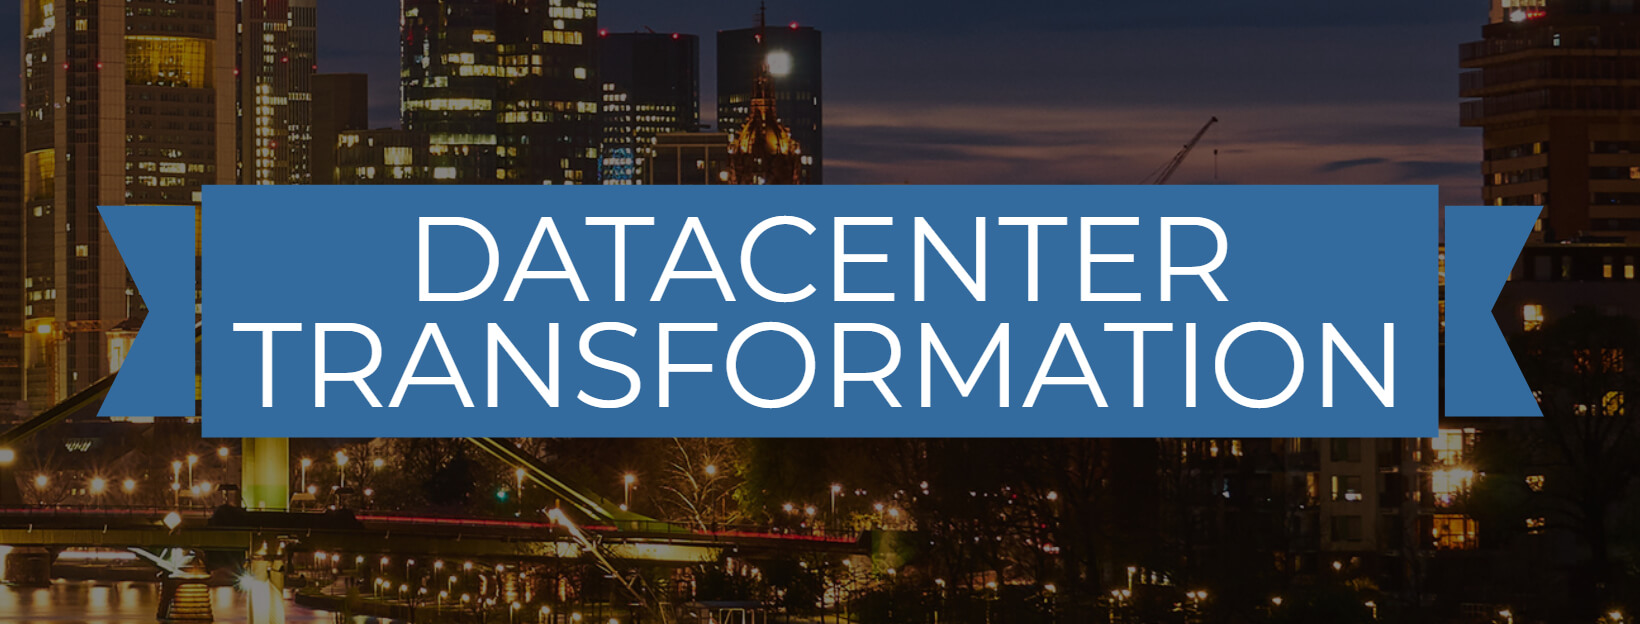 5 Awesome Things You Can Expect From Datacenter Transformation 2016